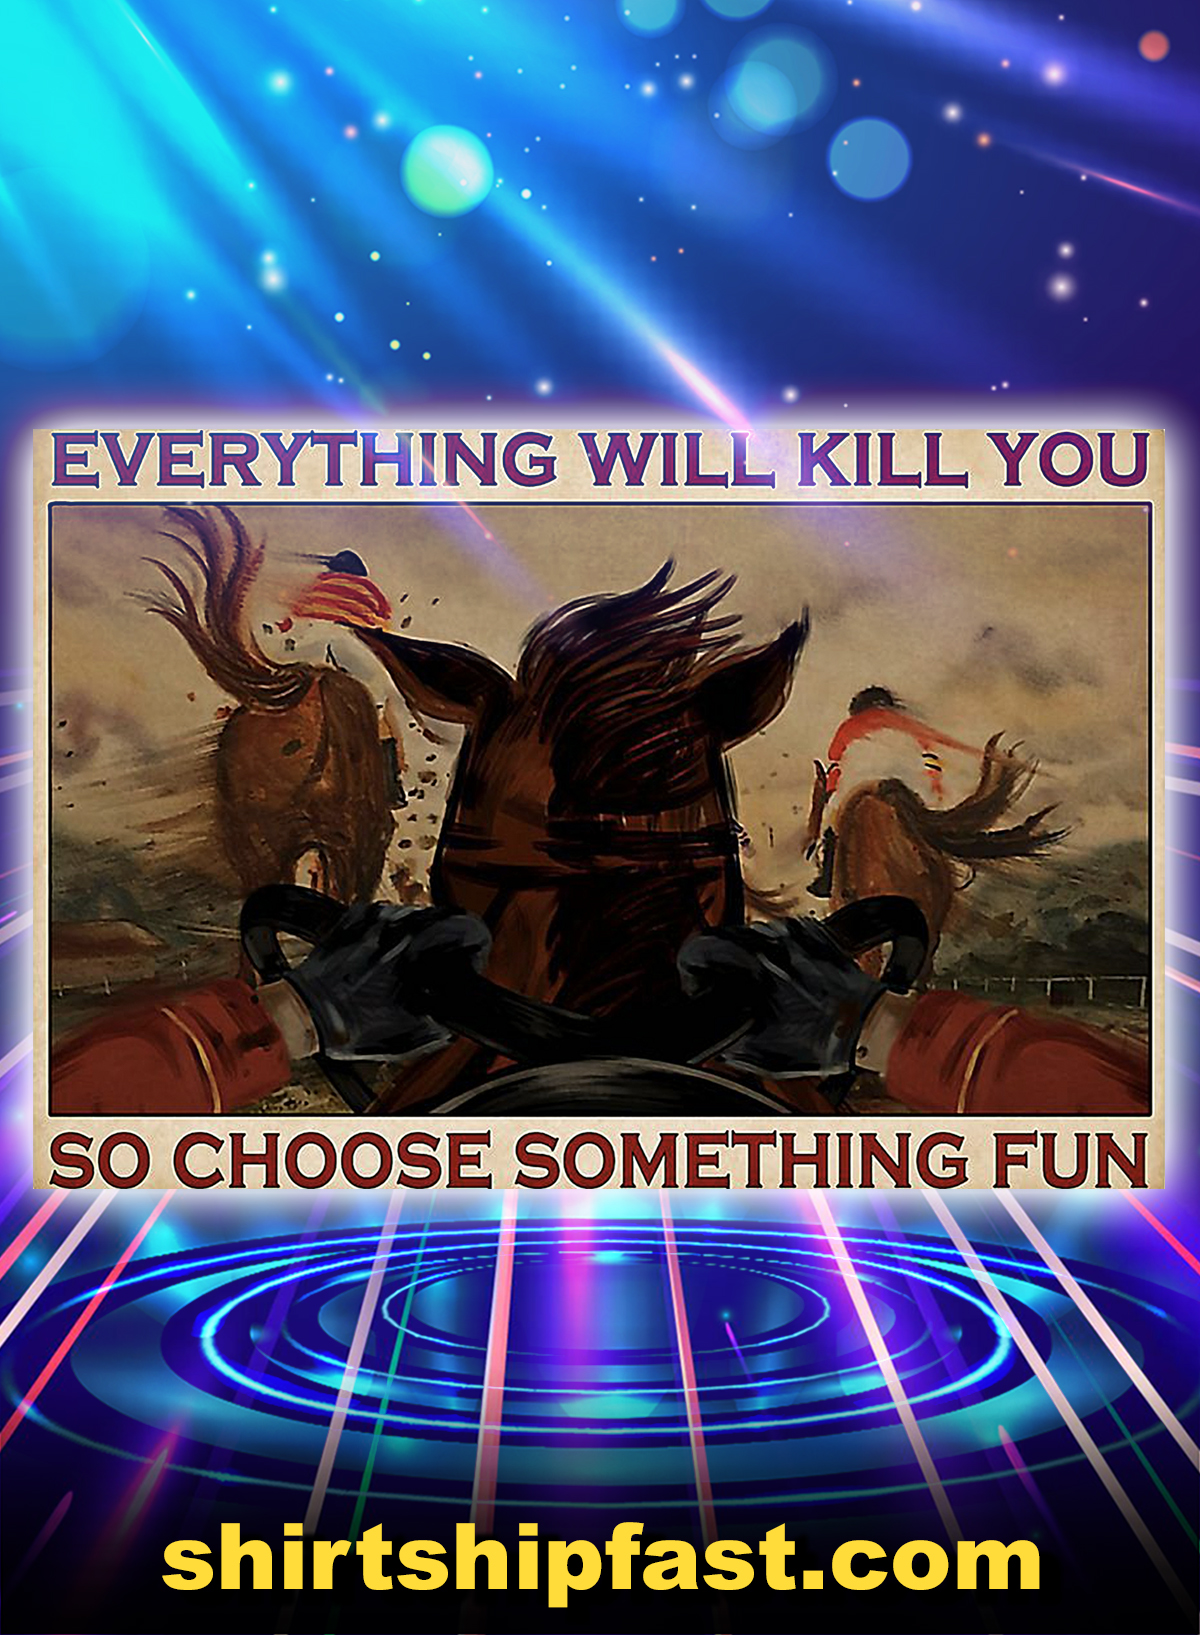 Horse race everything will kill you so choose something fun poster - A4